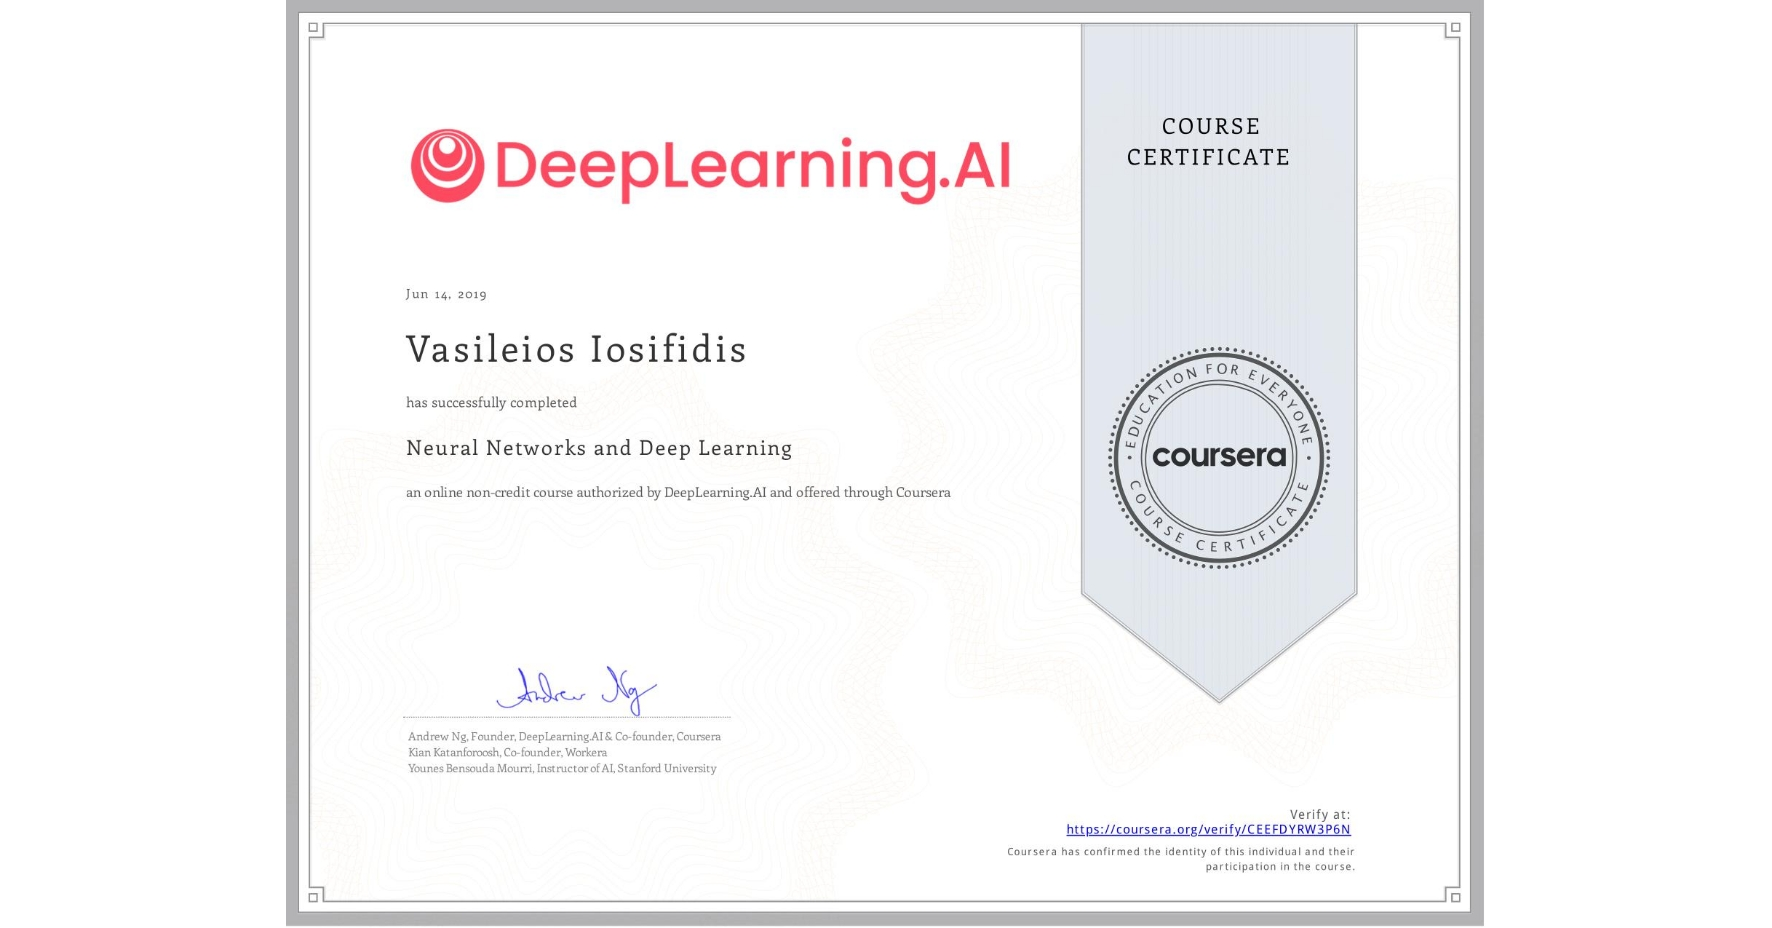 View certificate for Vasileios Iosifidis, Neural Networks and Deep Learning, an online non-credit course authorized by DeepLearning.AI and offered through Coursera